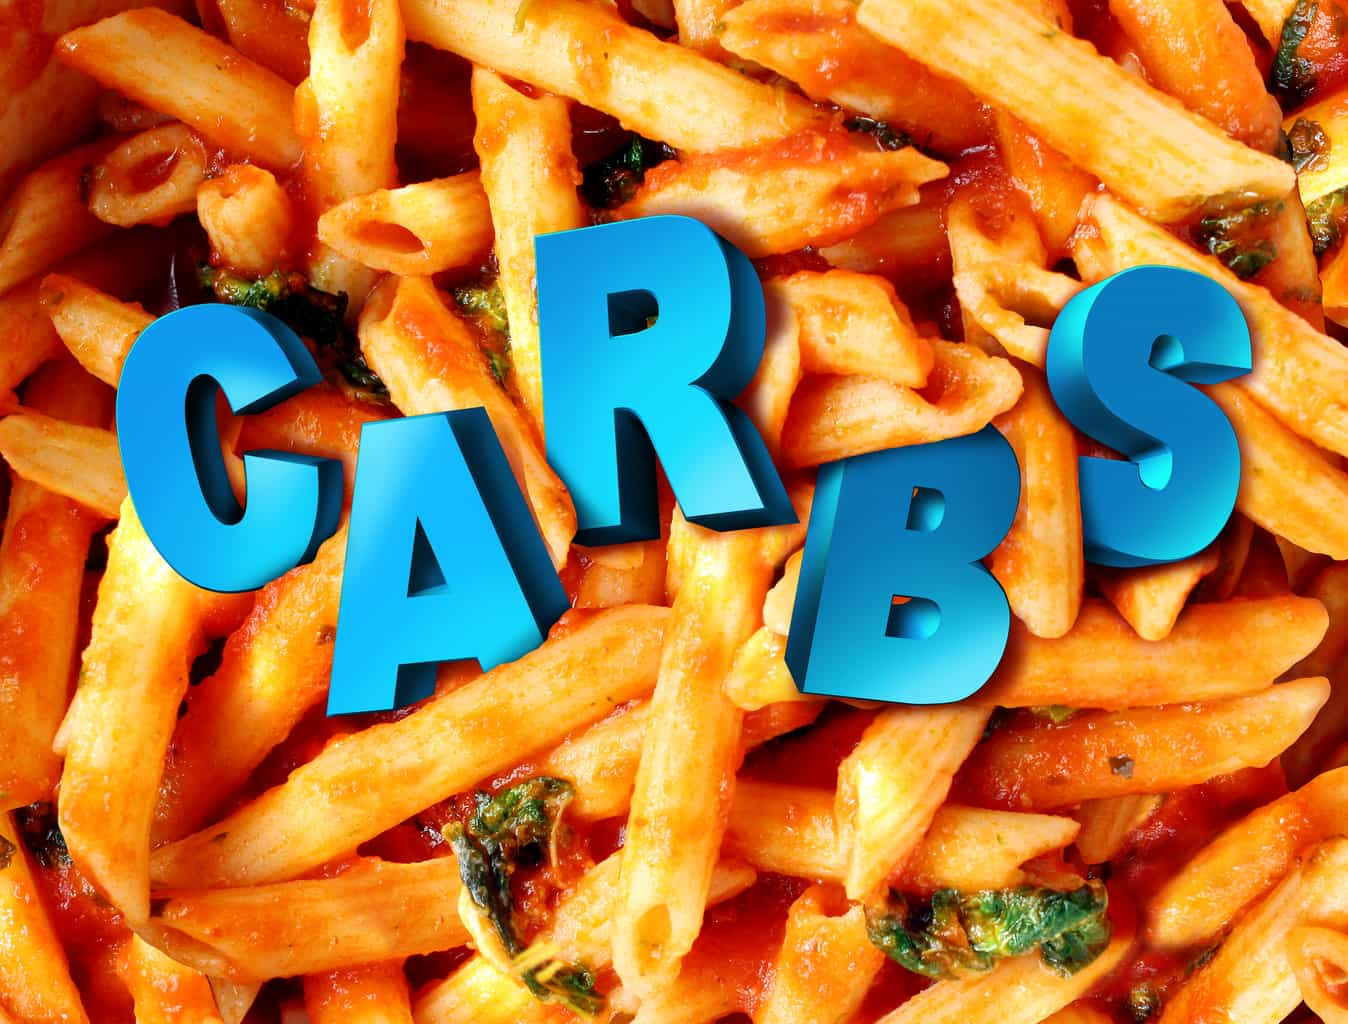 For a faster metabolism eat more CARBS